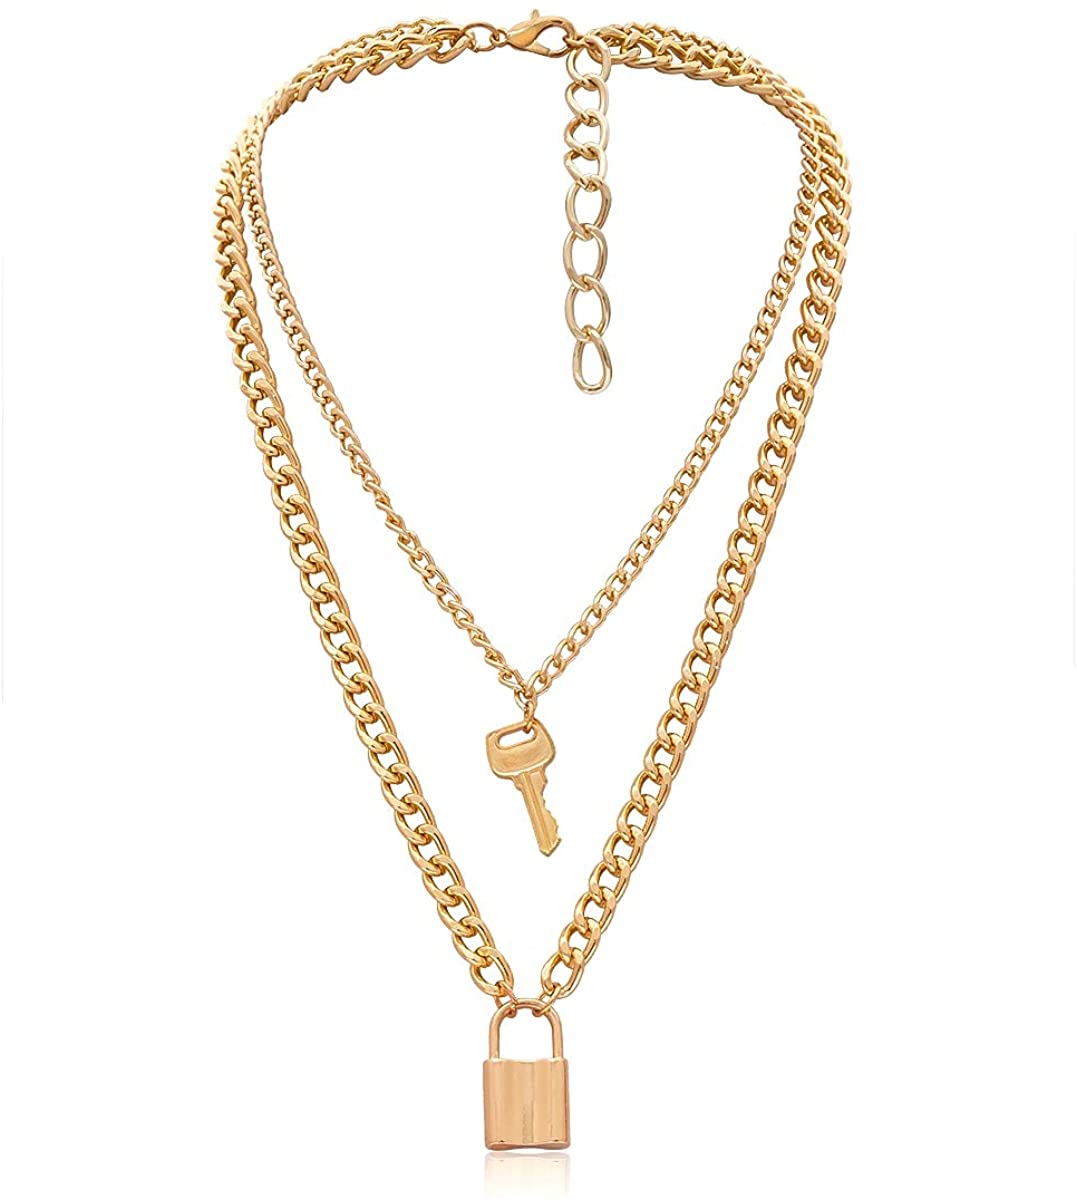 Jeweful Lock Necklace Y Pendant Simple Cute Necklaces Key Long Multilayer Chain Fashion Jewelry Women Girls Gift for Her